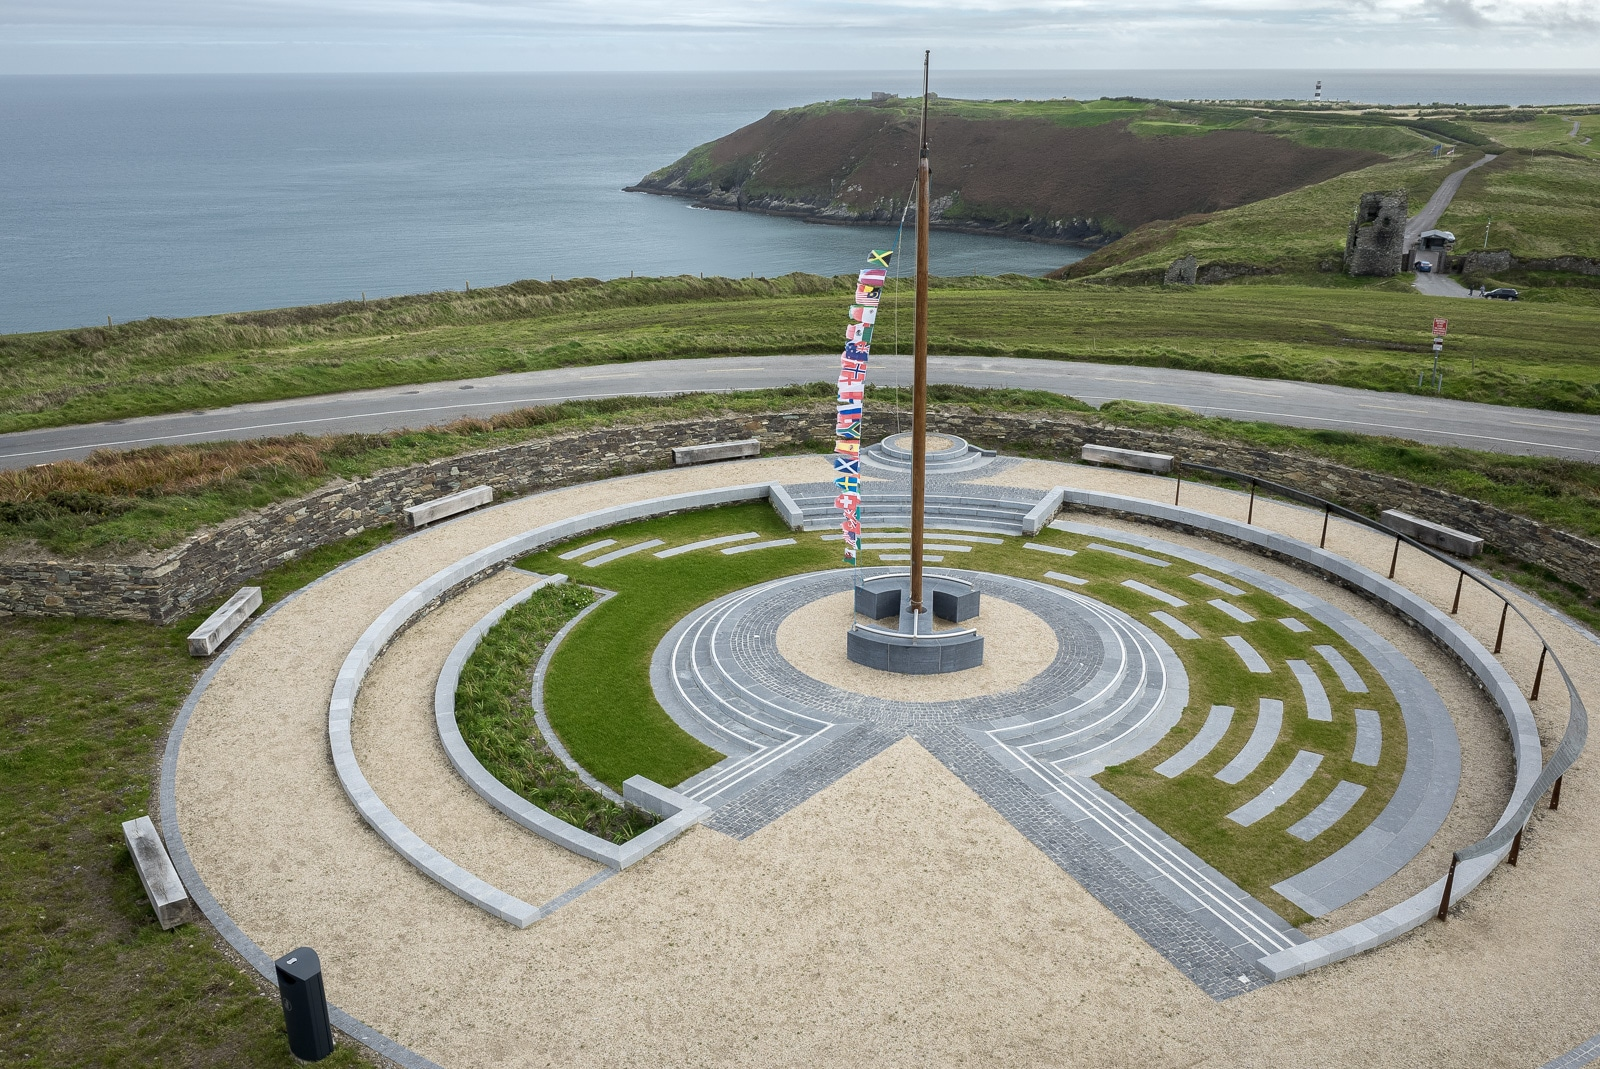 A Trip to Kinsale and The Old Head Peninsula in Ireland